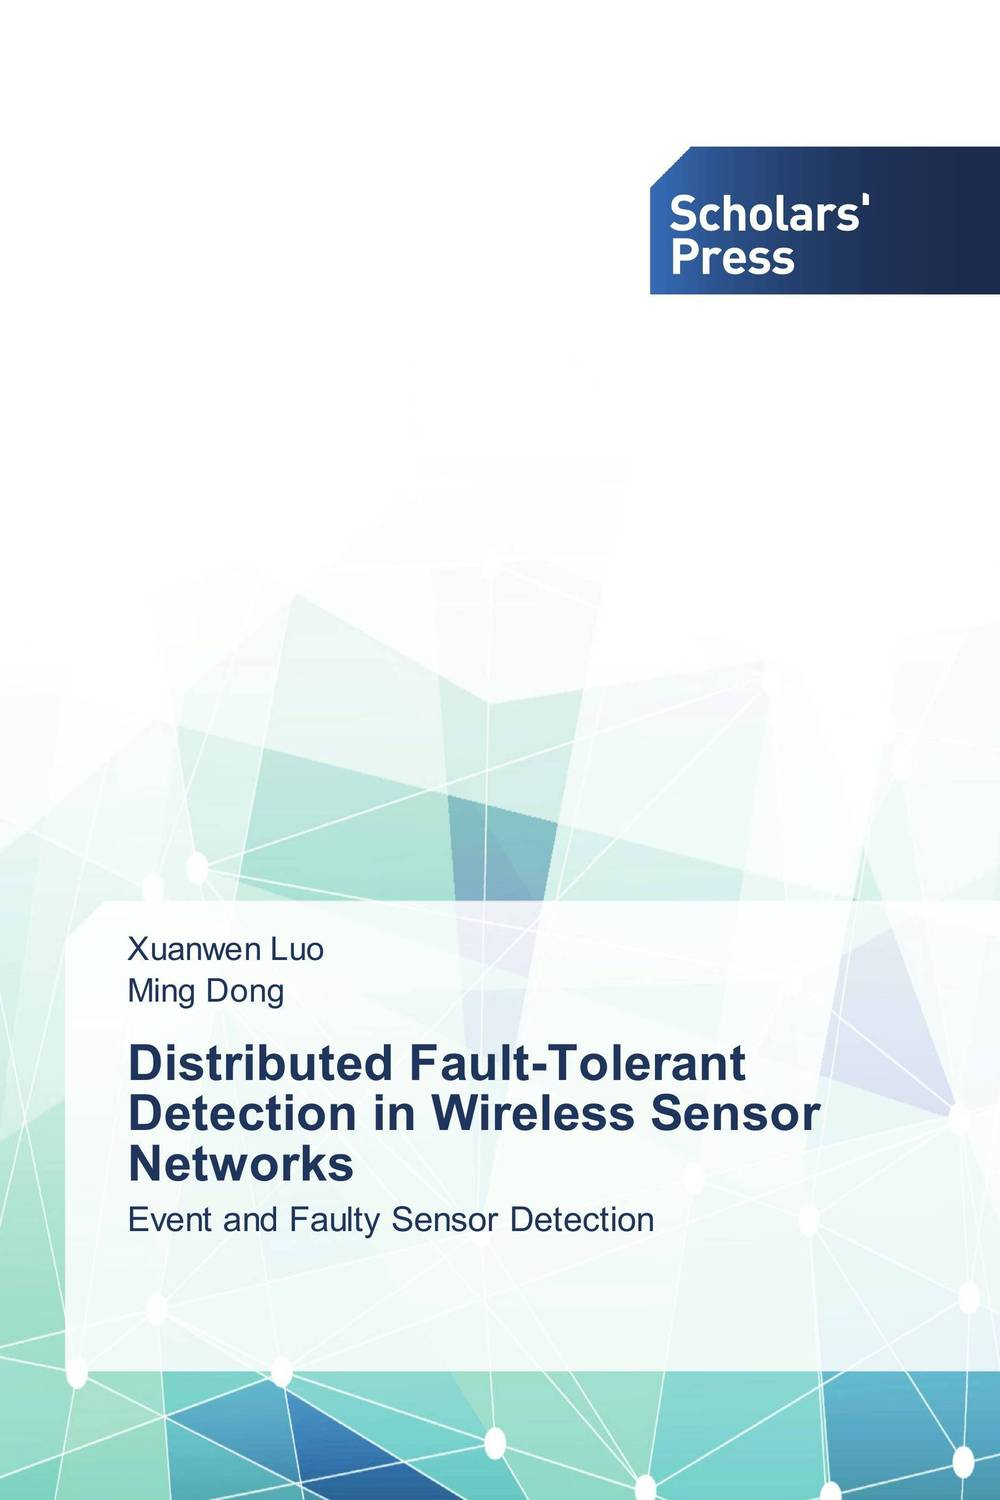 Distributed Fault-Tolerant Detection in Wireless Sensor Networks intrusion detection system architecture in wireless sensor network